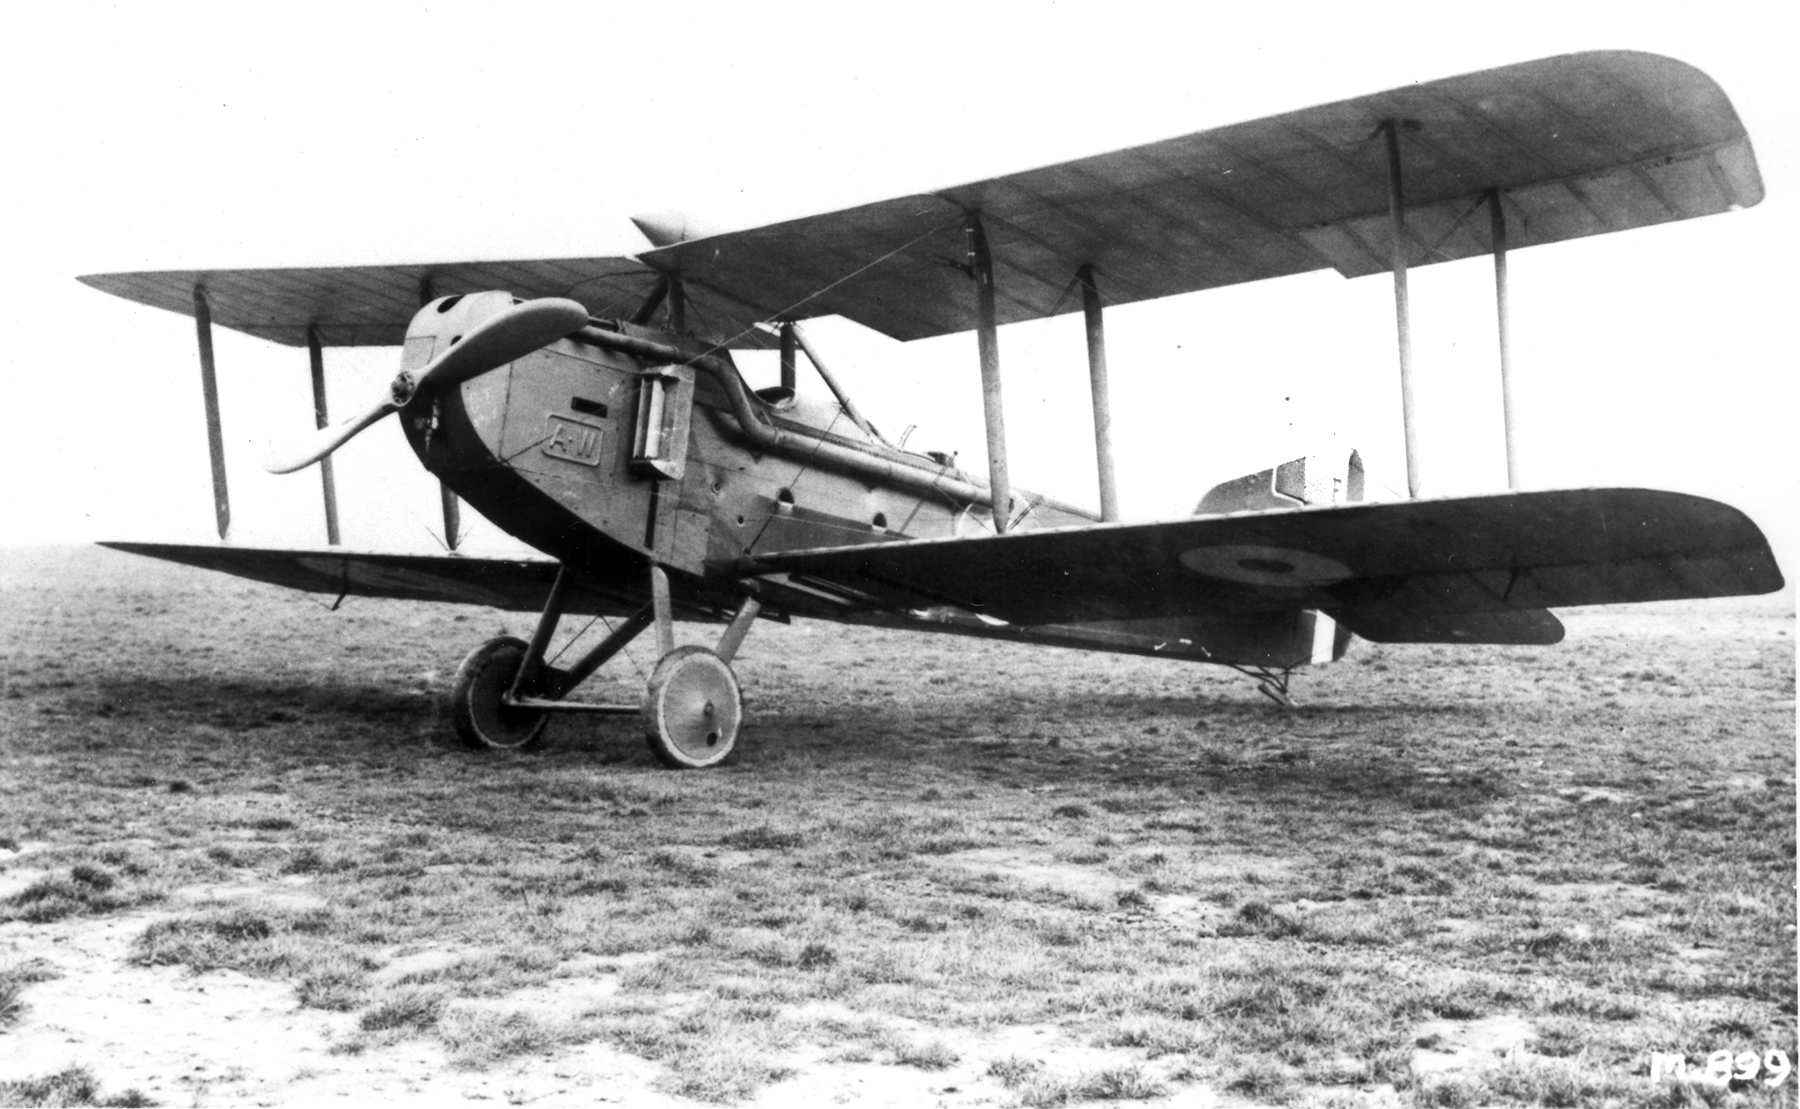 An Armstrong-Whitworth FK8 similar to the one piloted by Second Lieutenant Alan McLeod that was downed by eight enemy aircraft on March 27, 1918, in an attack that exploded the gas tank and caused the flaming aircraft to crash. PHOTO: DND/LAC PA 006297